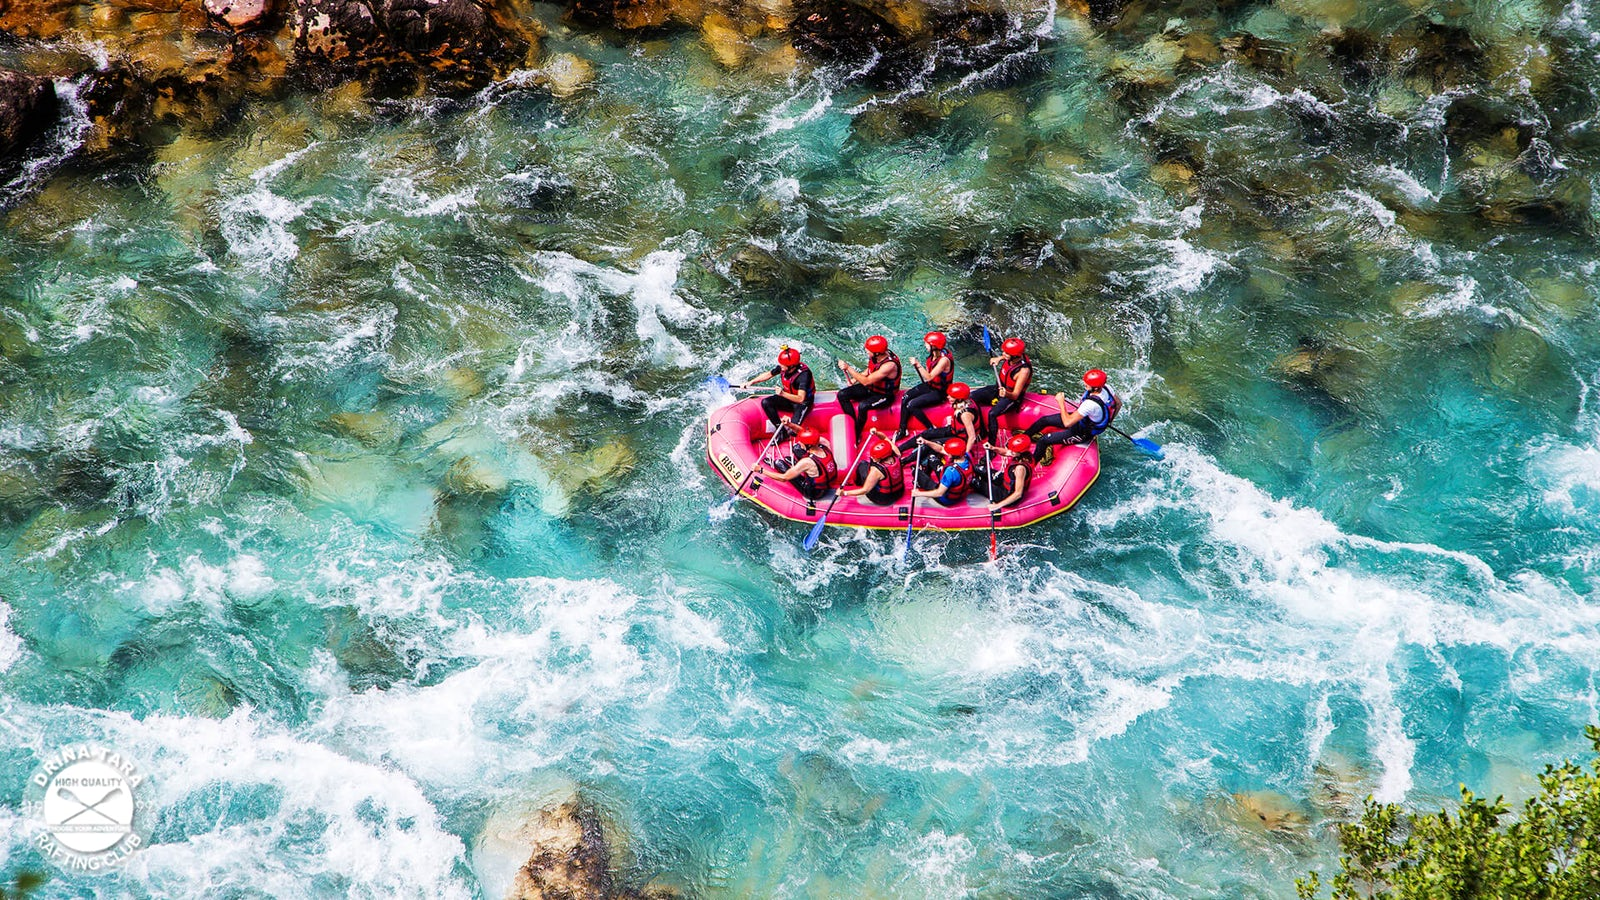 Cover picture © credits to Rafting Centar Drina-Tara